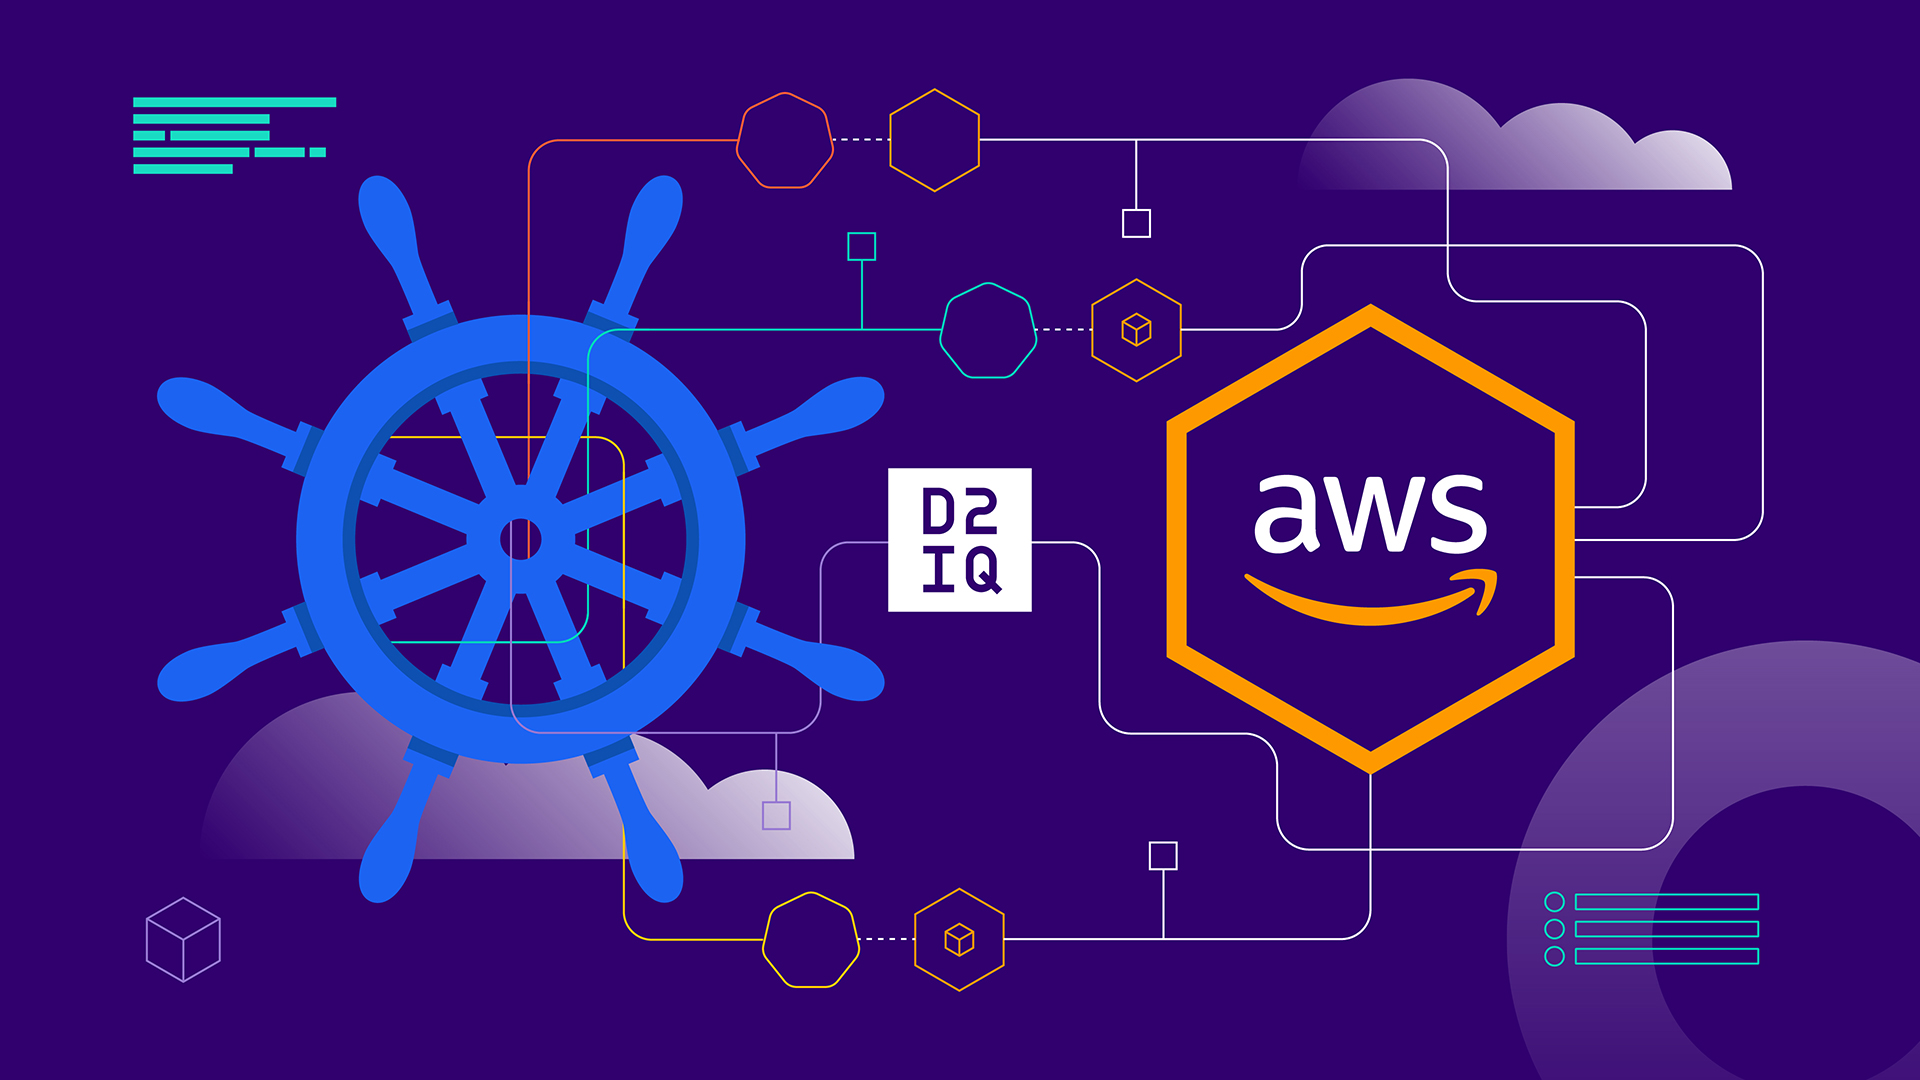 D2iQ Kommander and AWS Kubernetes Services: A Winning Combination